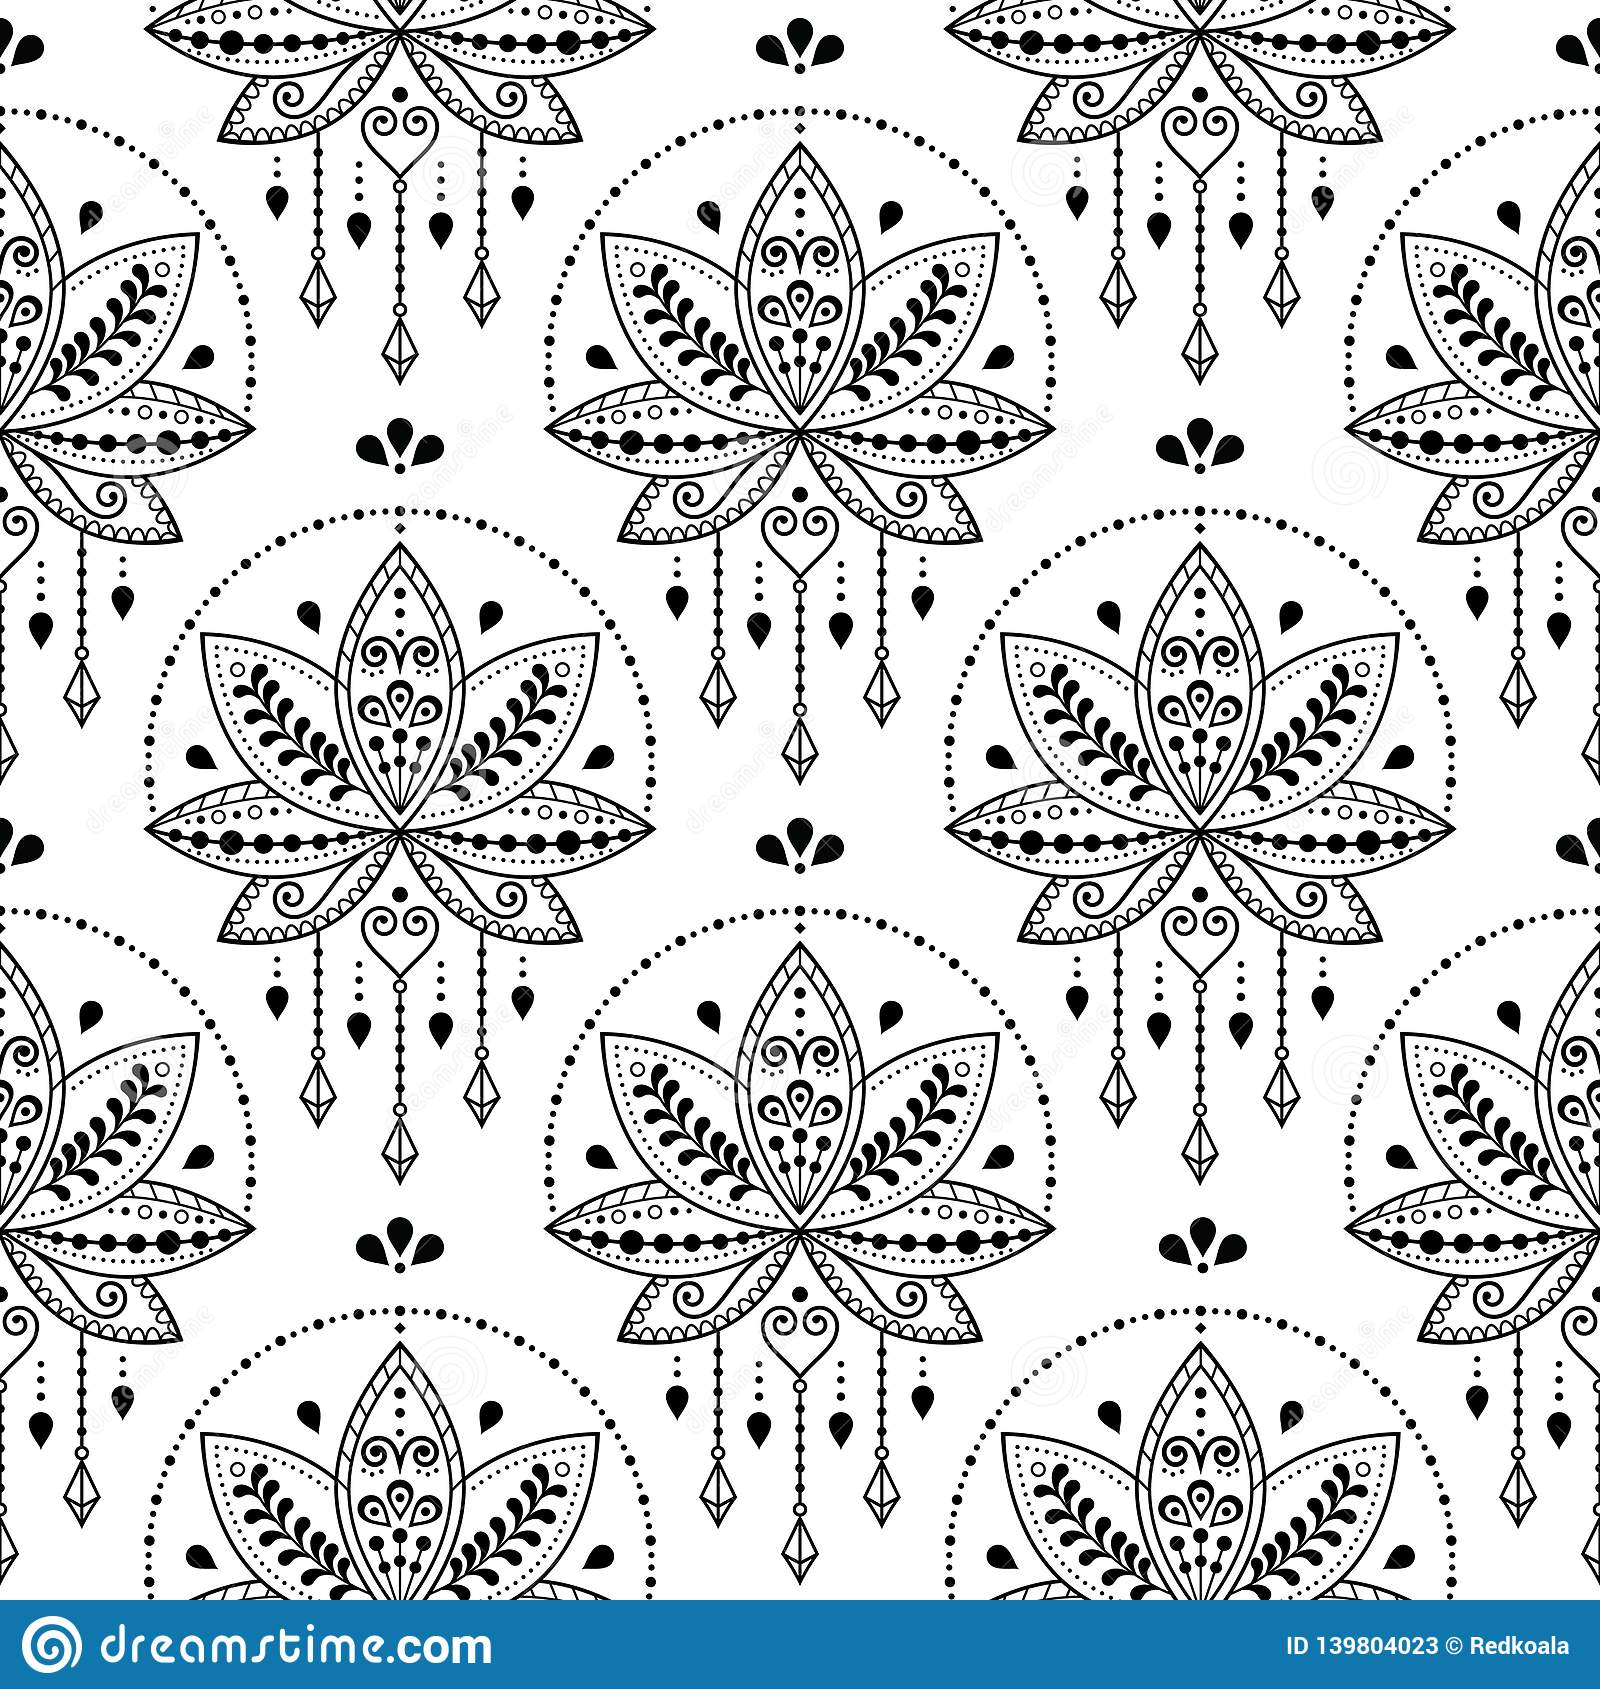 558745a2169d3 Beautiful lotus repetitive pattern inspired by traditional tattoo art from  India - boho style